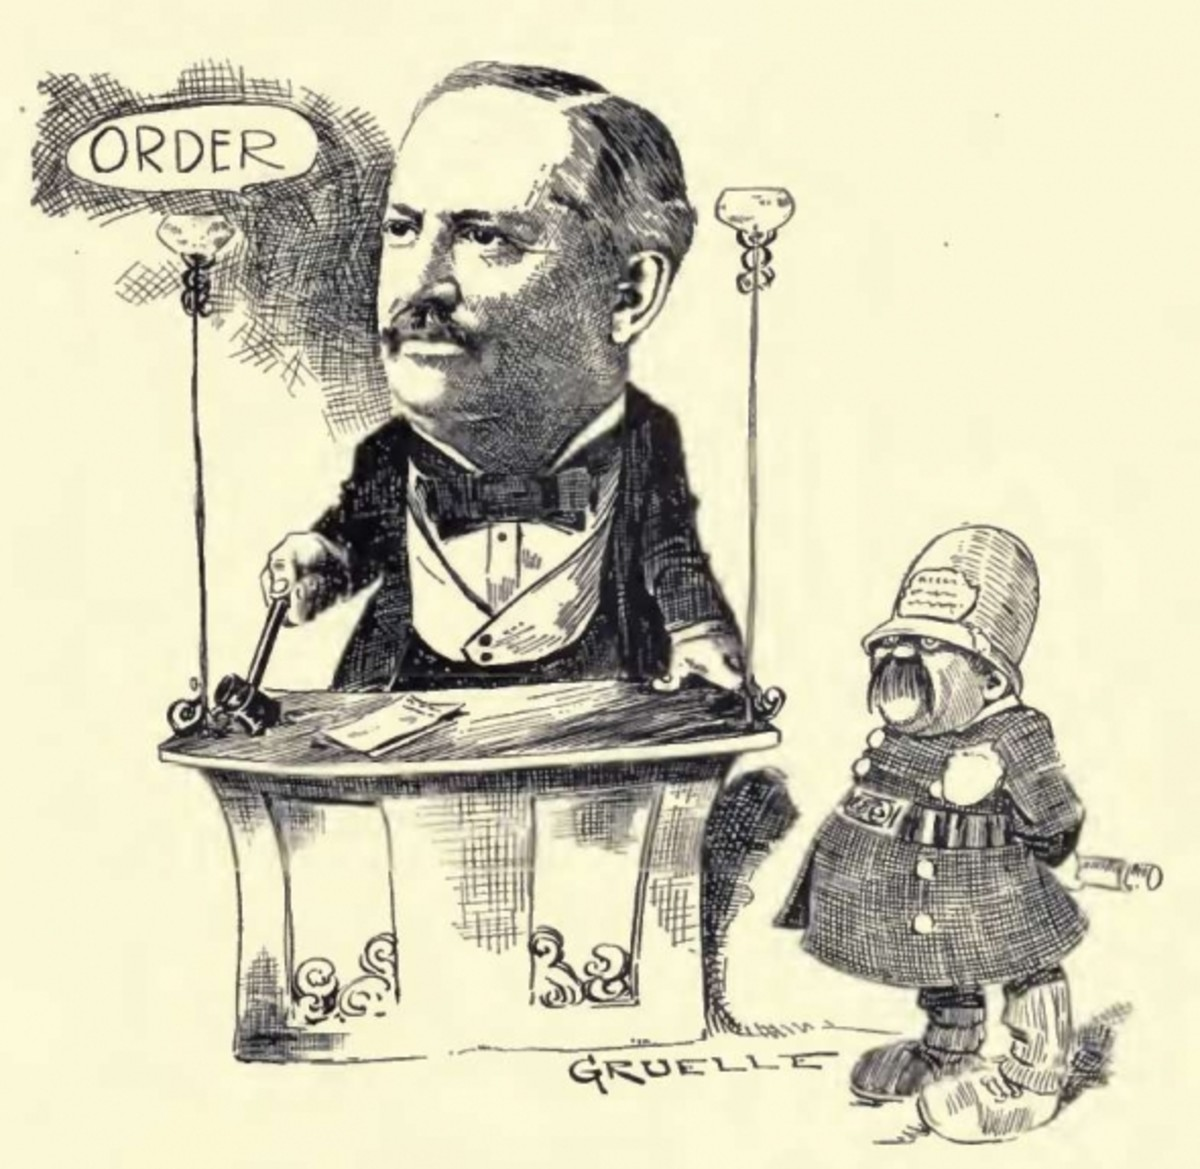 Johnny B. Gruelle caricature